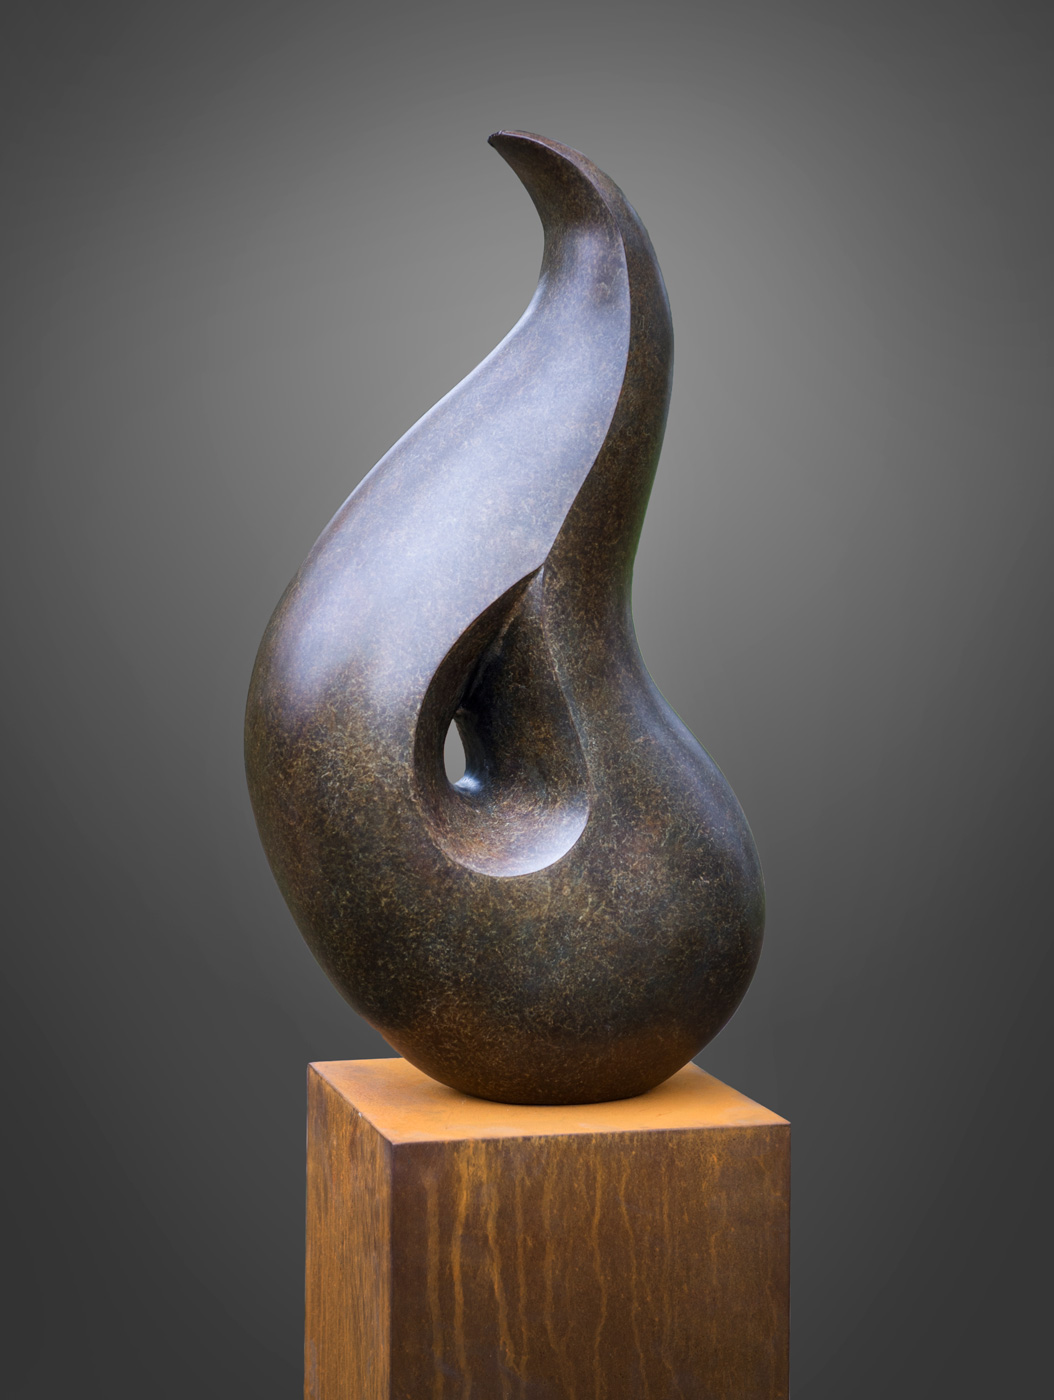 Abstract bronze sculpture by artist Anthony Smith